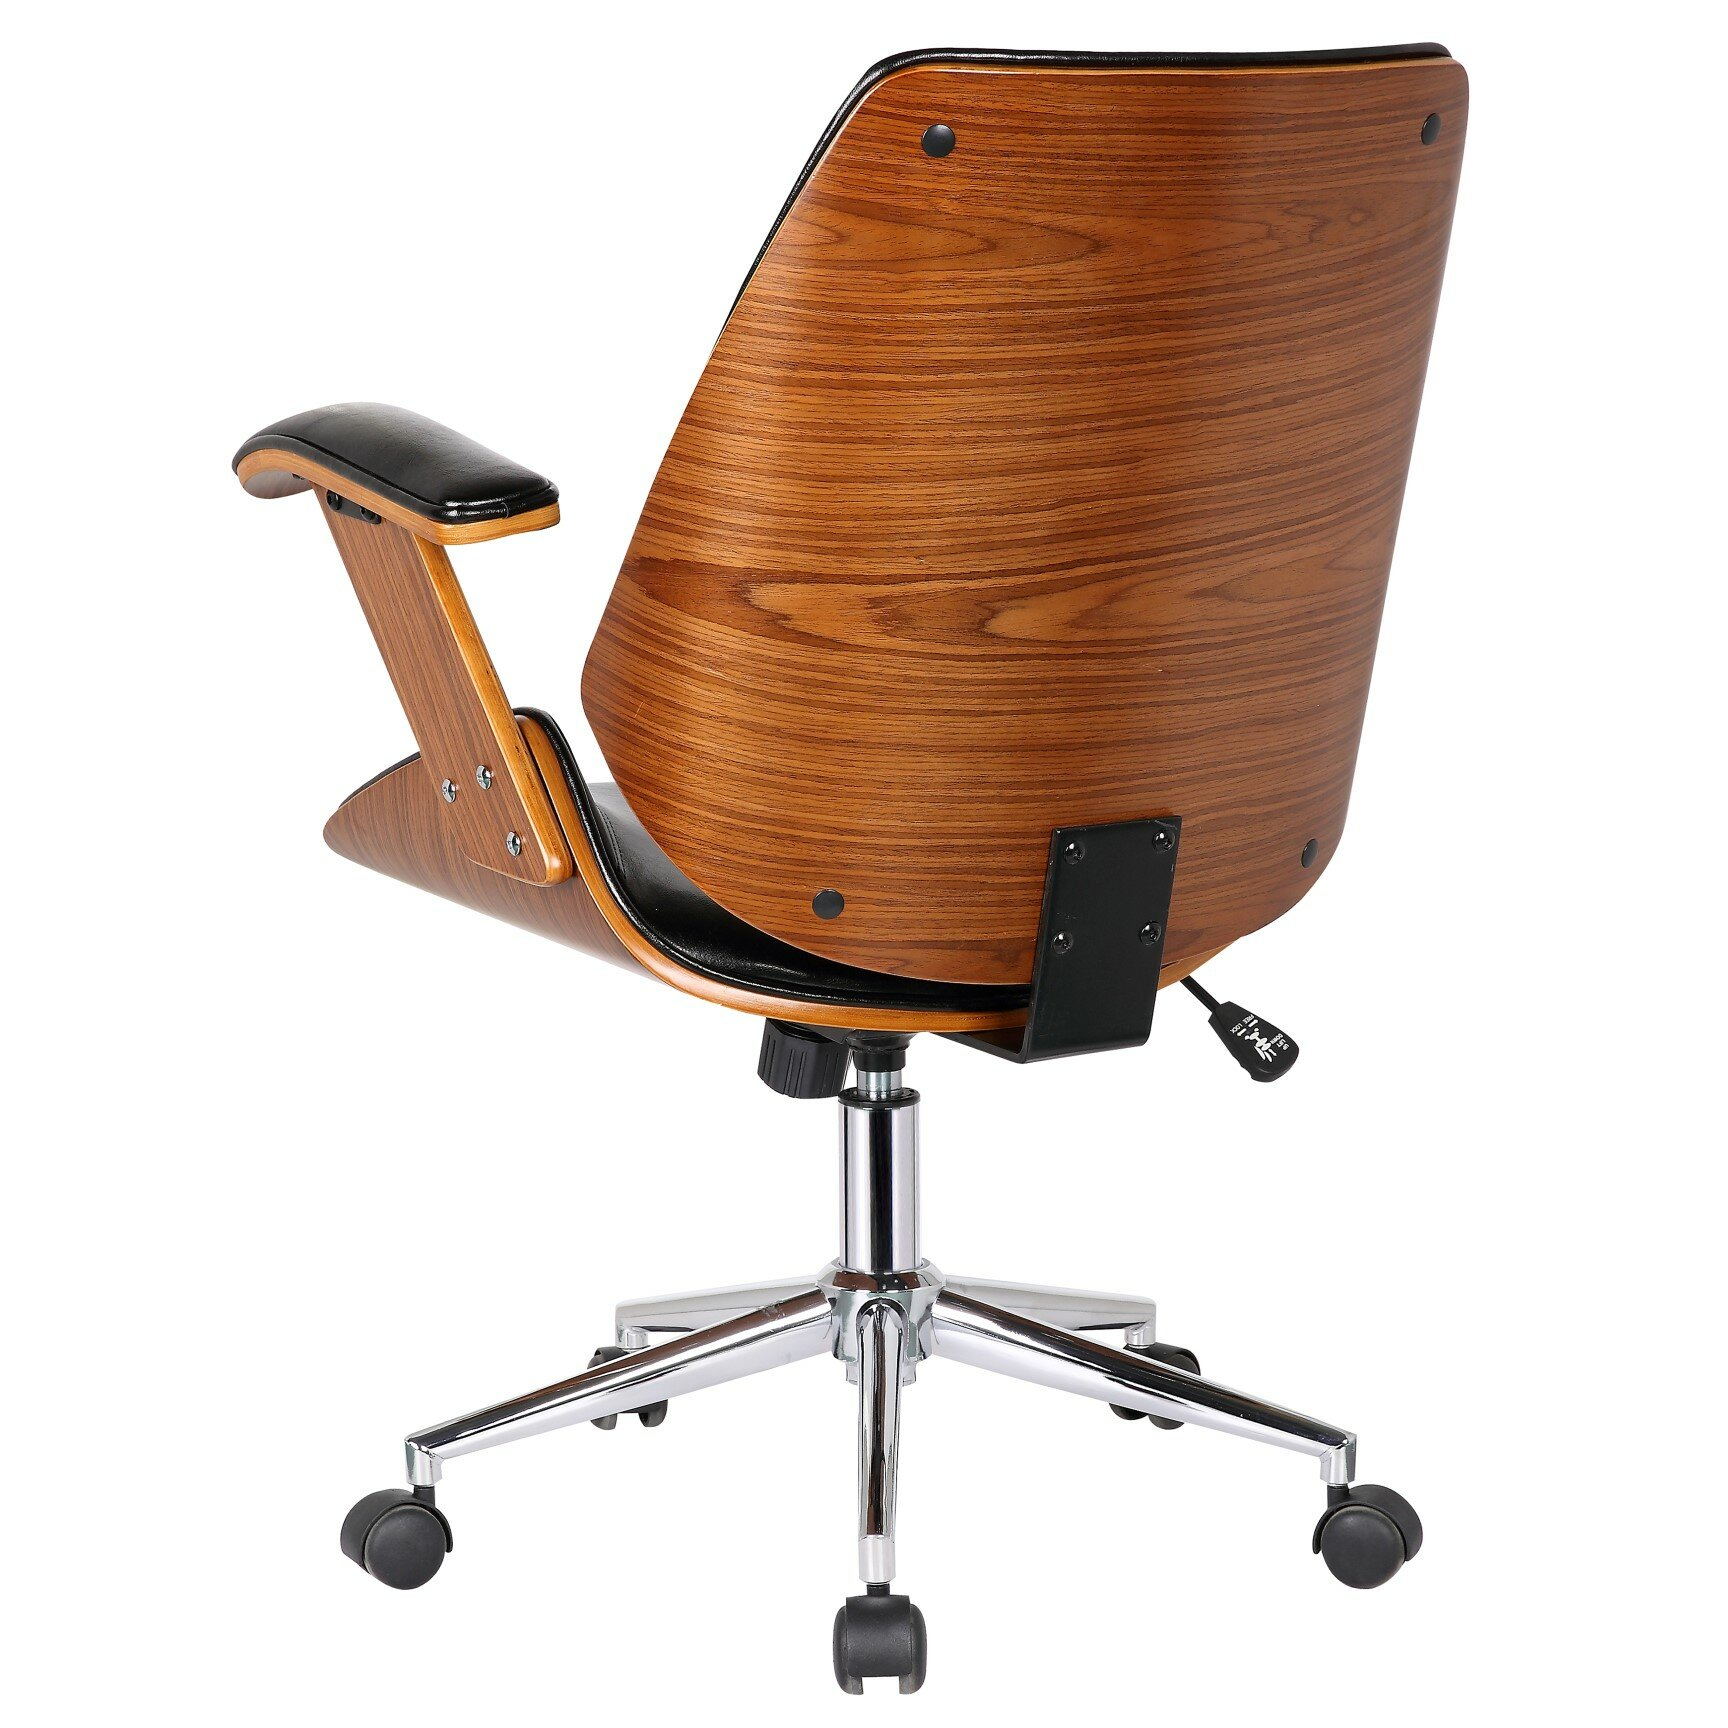 Tan leather office chair - Smythe Mid Back Leather Desk Chair